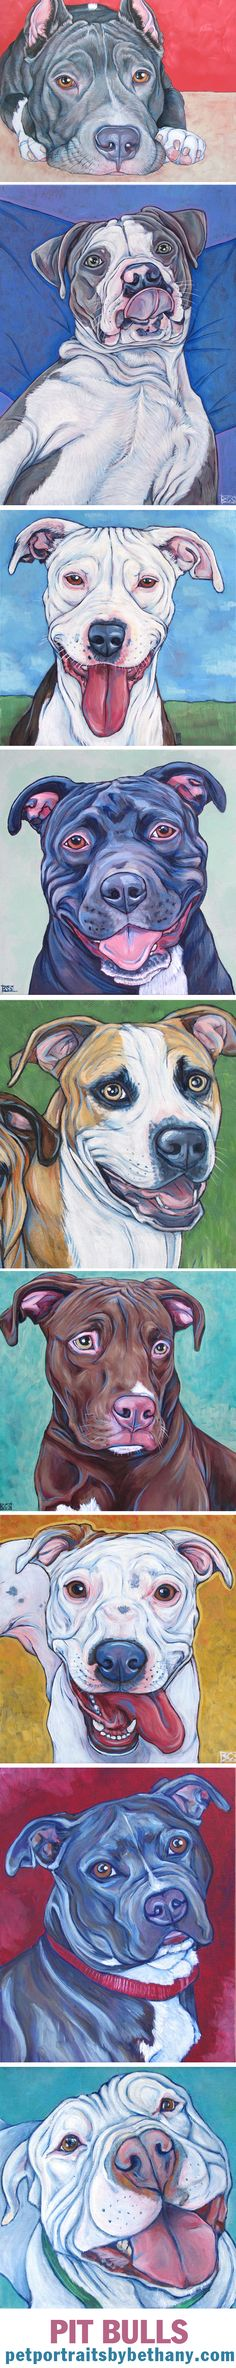 Pit Bull Dogs Custom Pet Portrait Paintings by Bethany.